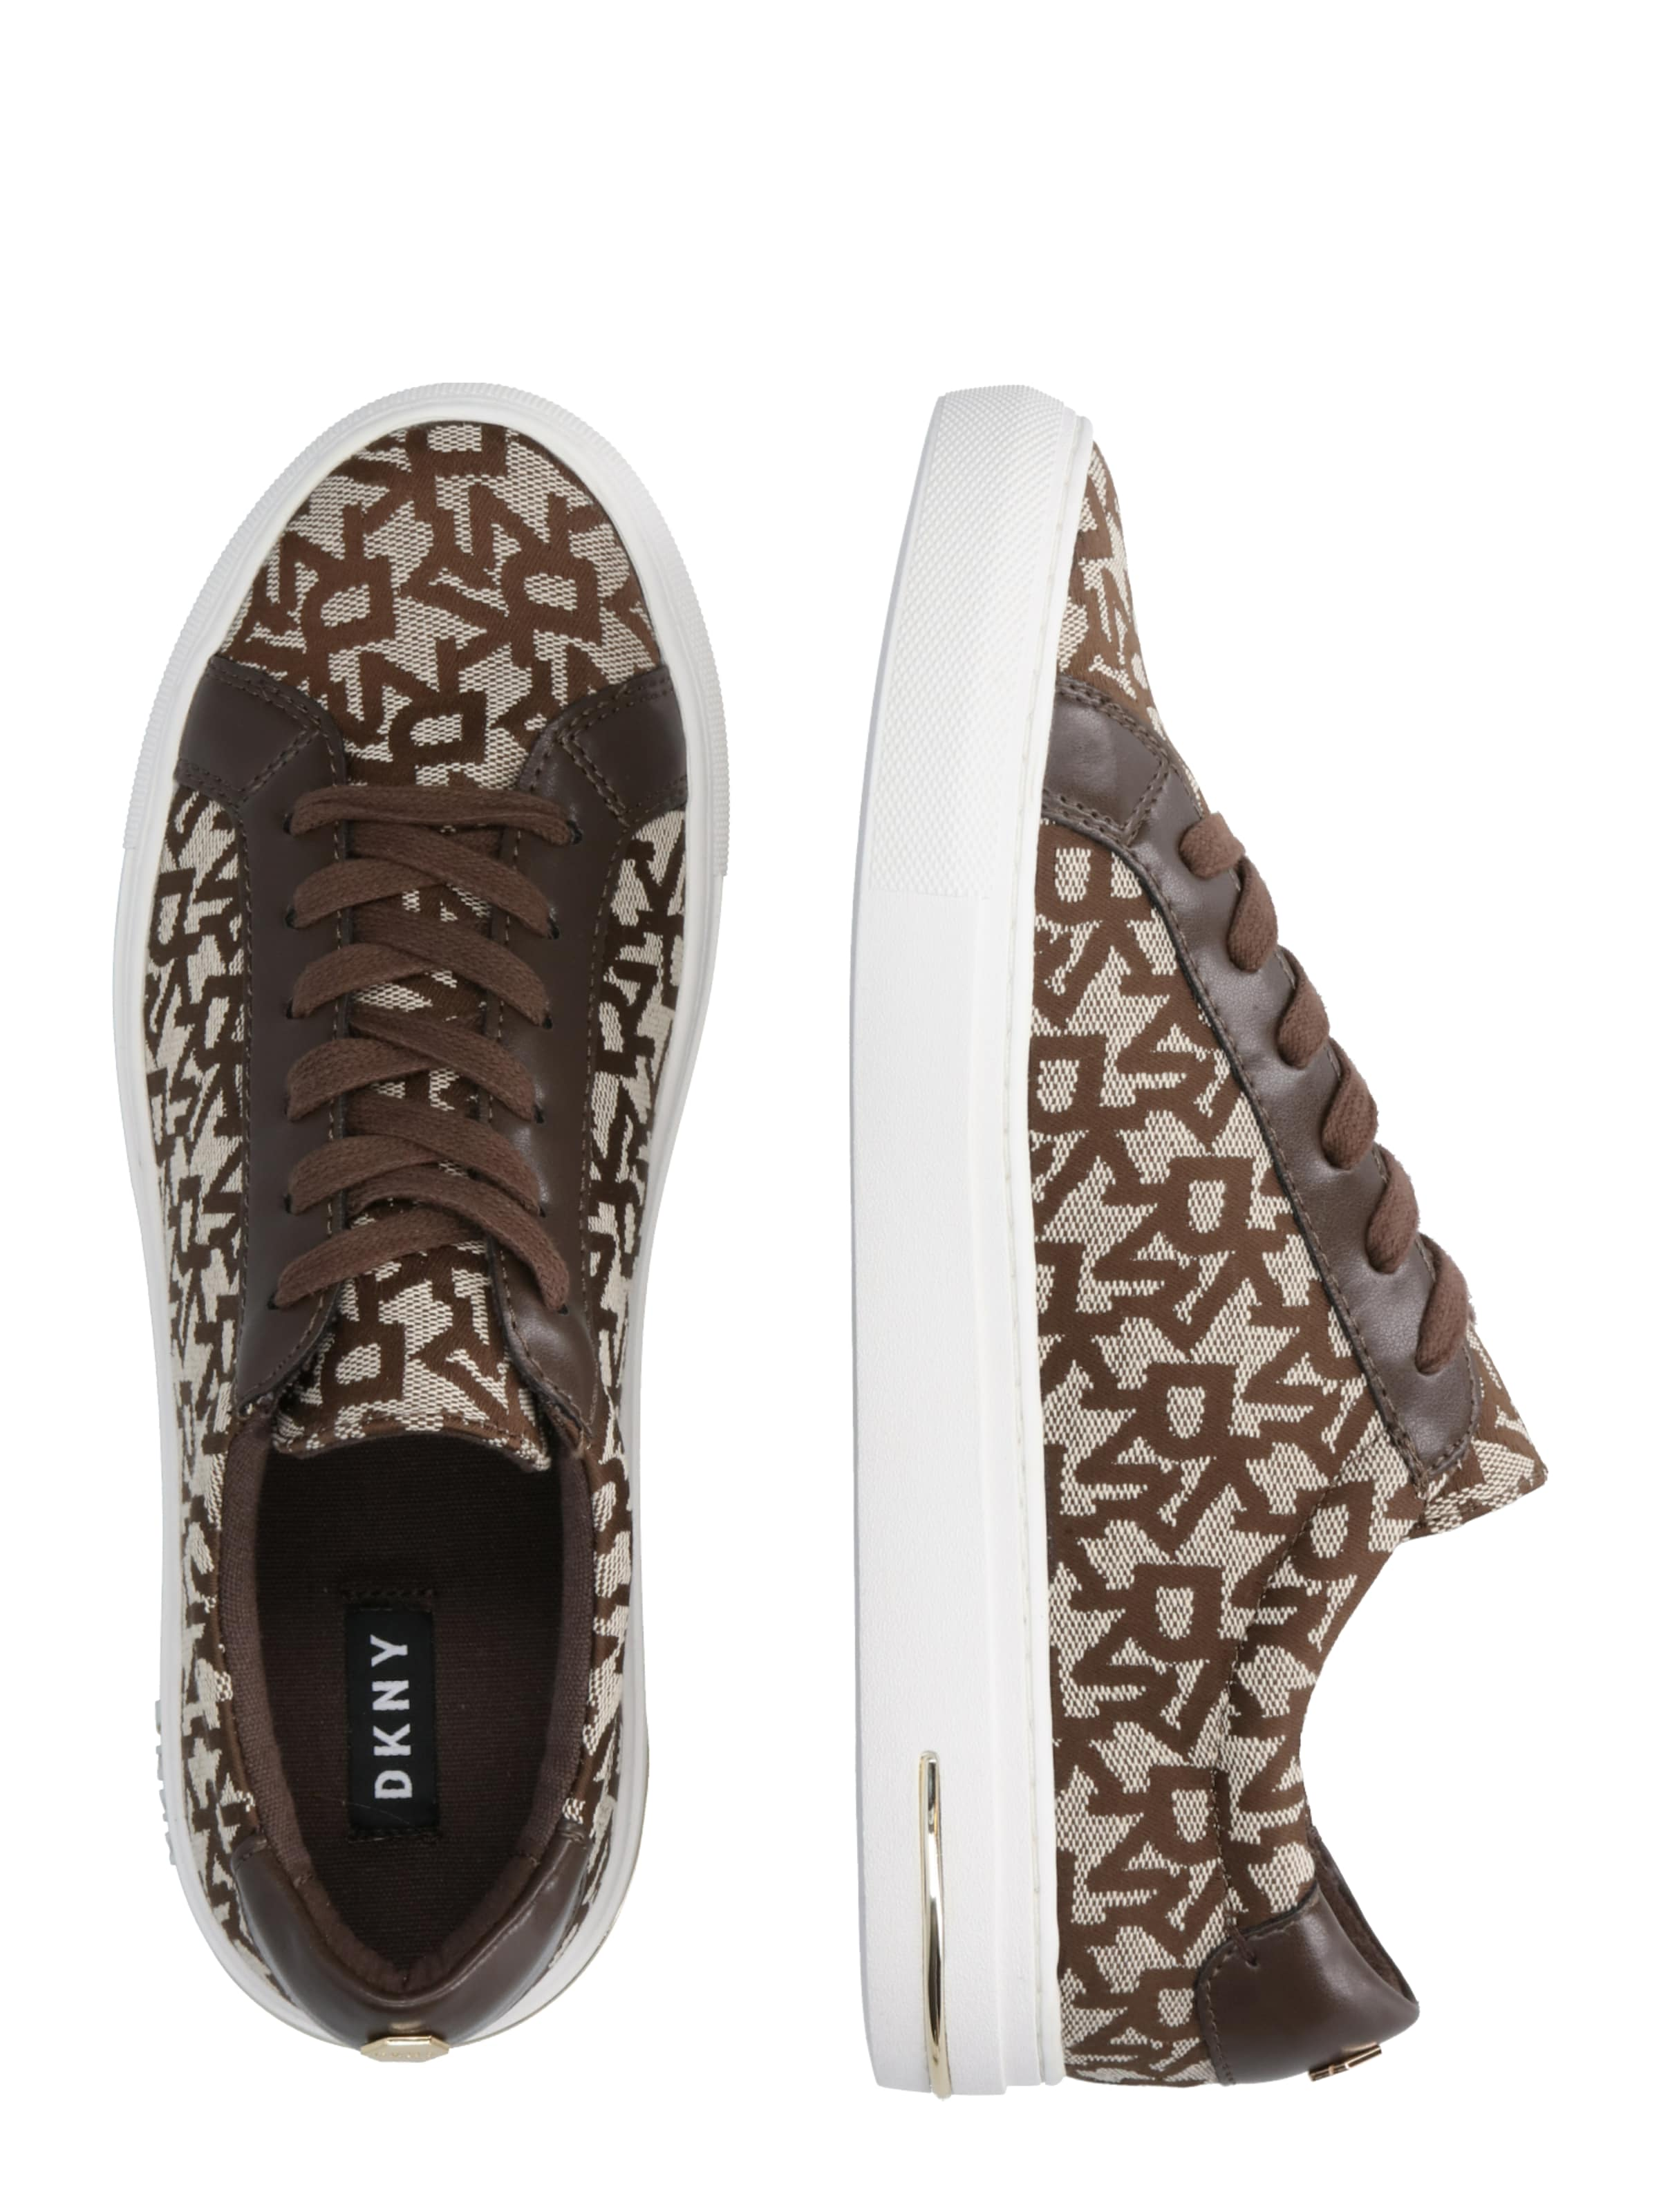 DknyBaskets Basses In 'court lace Marron Up' 2EYWH9ID